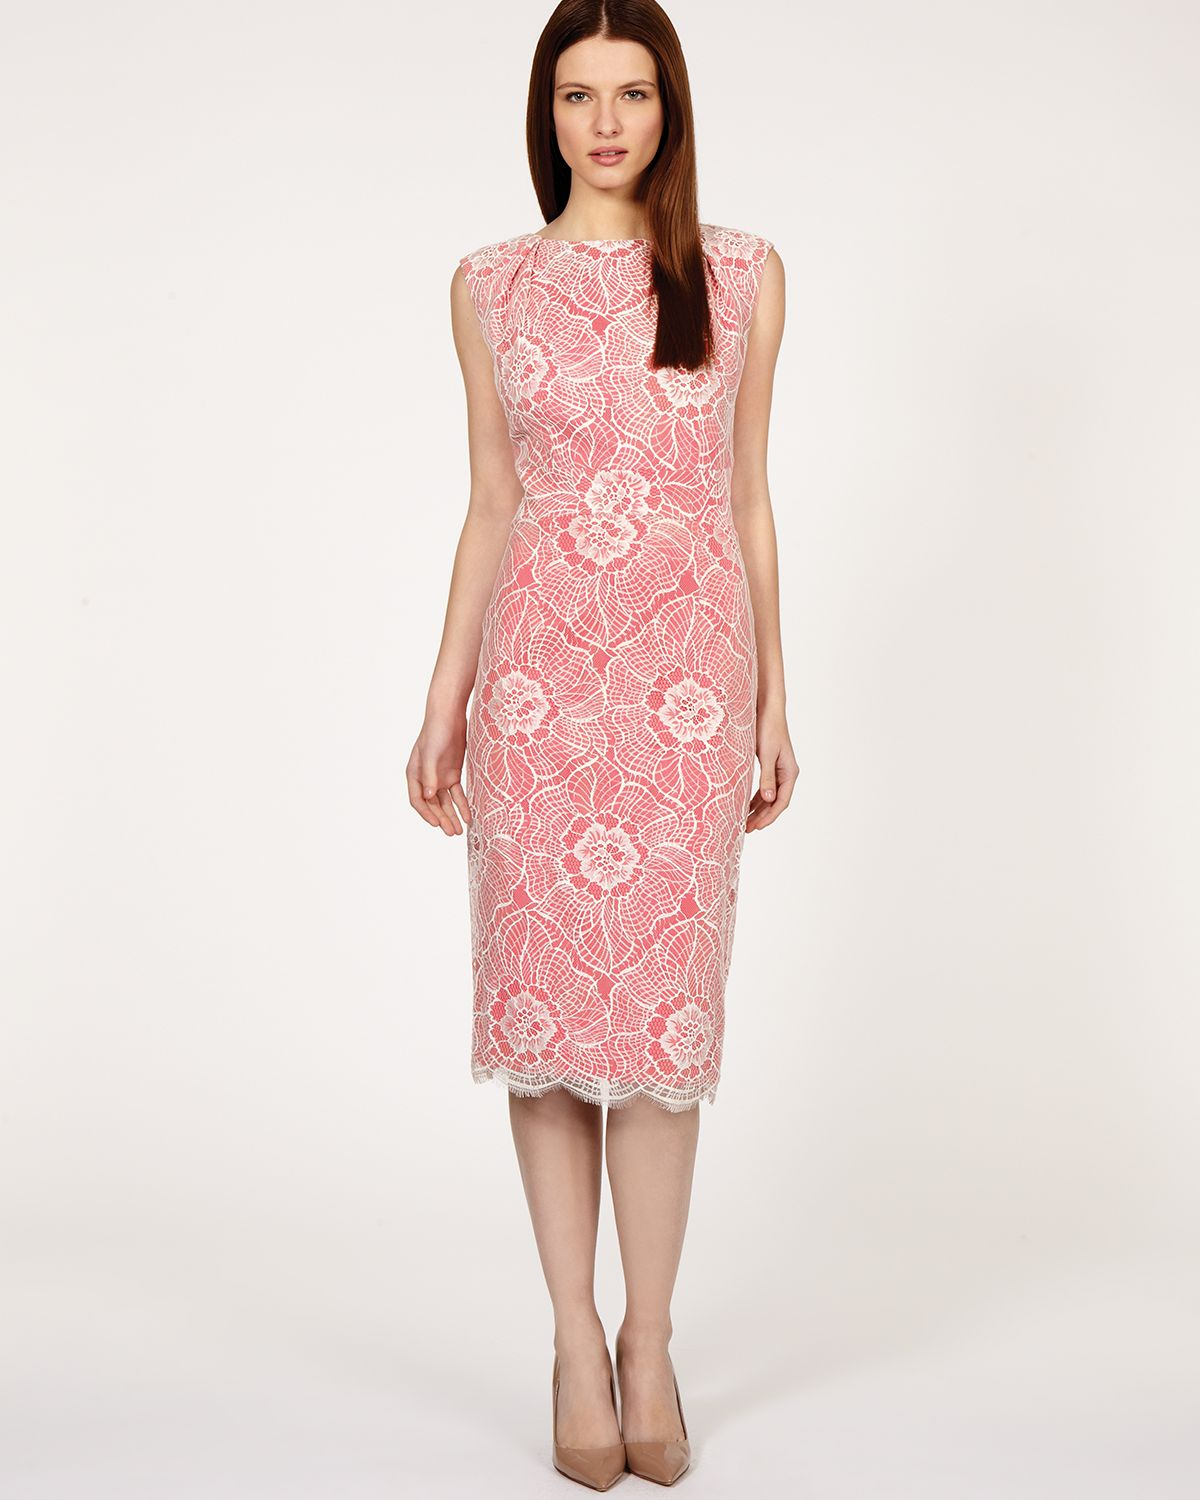 Lyst - Coast Dress Lexique in Pink